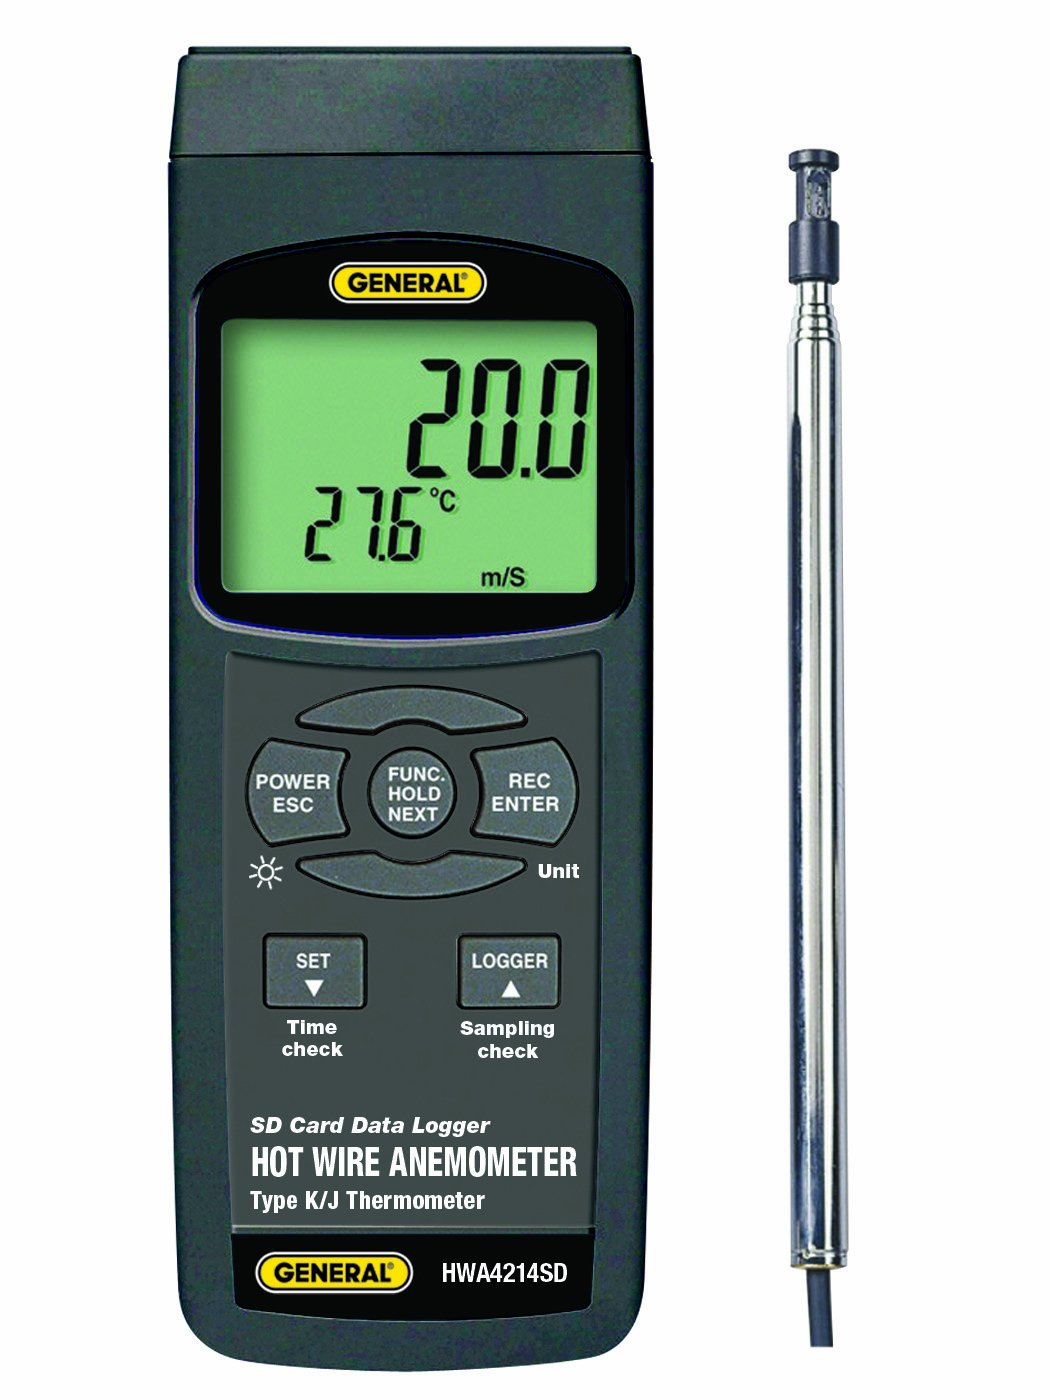 General Tools HWA4214SD Digital Hot Wire Anemometer, with Data Logging SD Card by General Tools (Image #1)